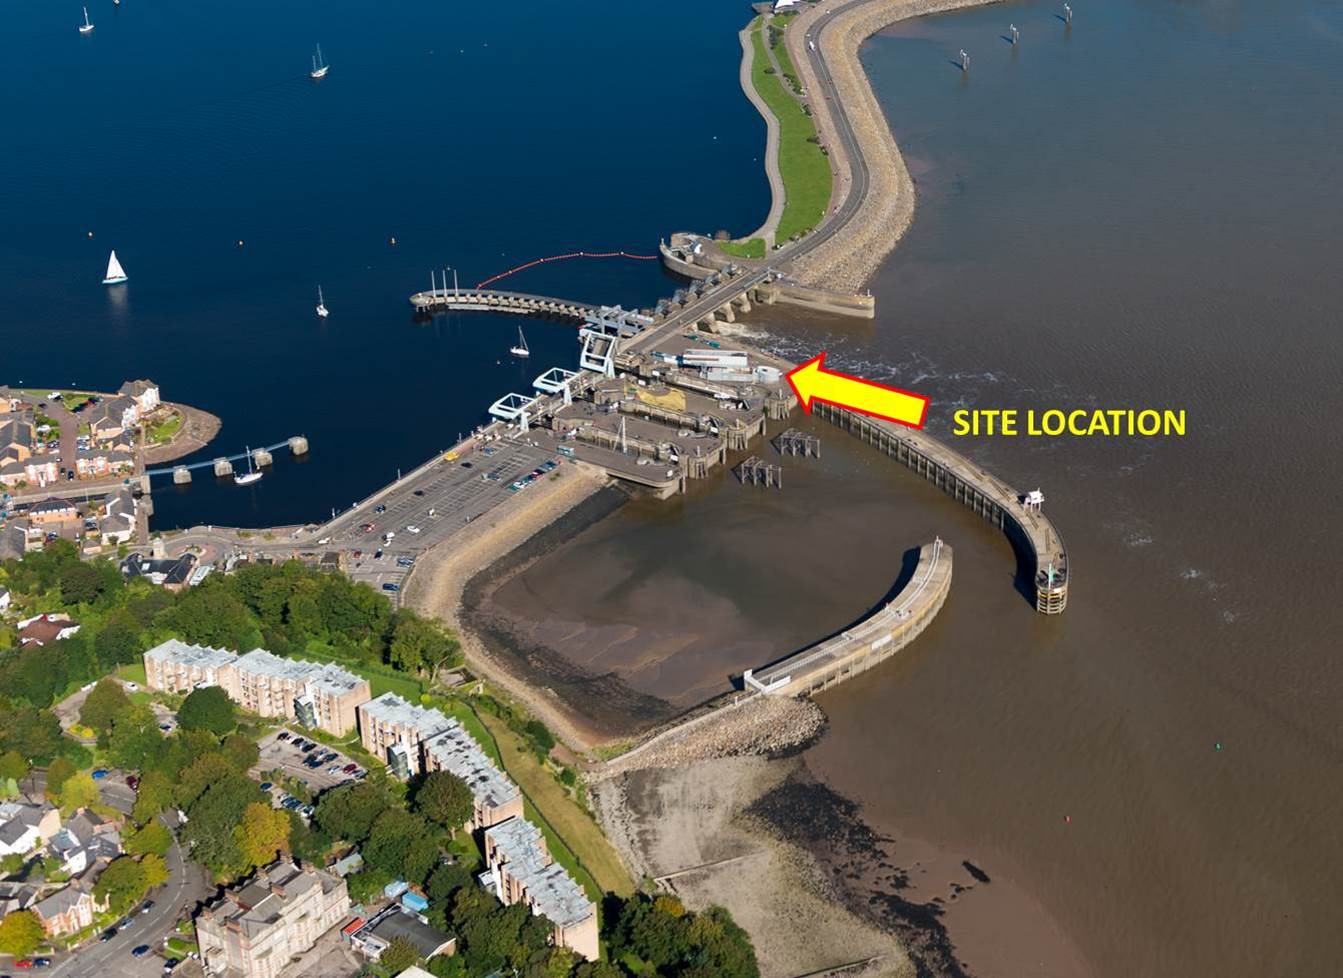 Bicycle Maintenance, Repair and Retail outlet  – Cardiff Bay Barrage